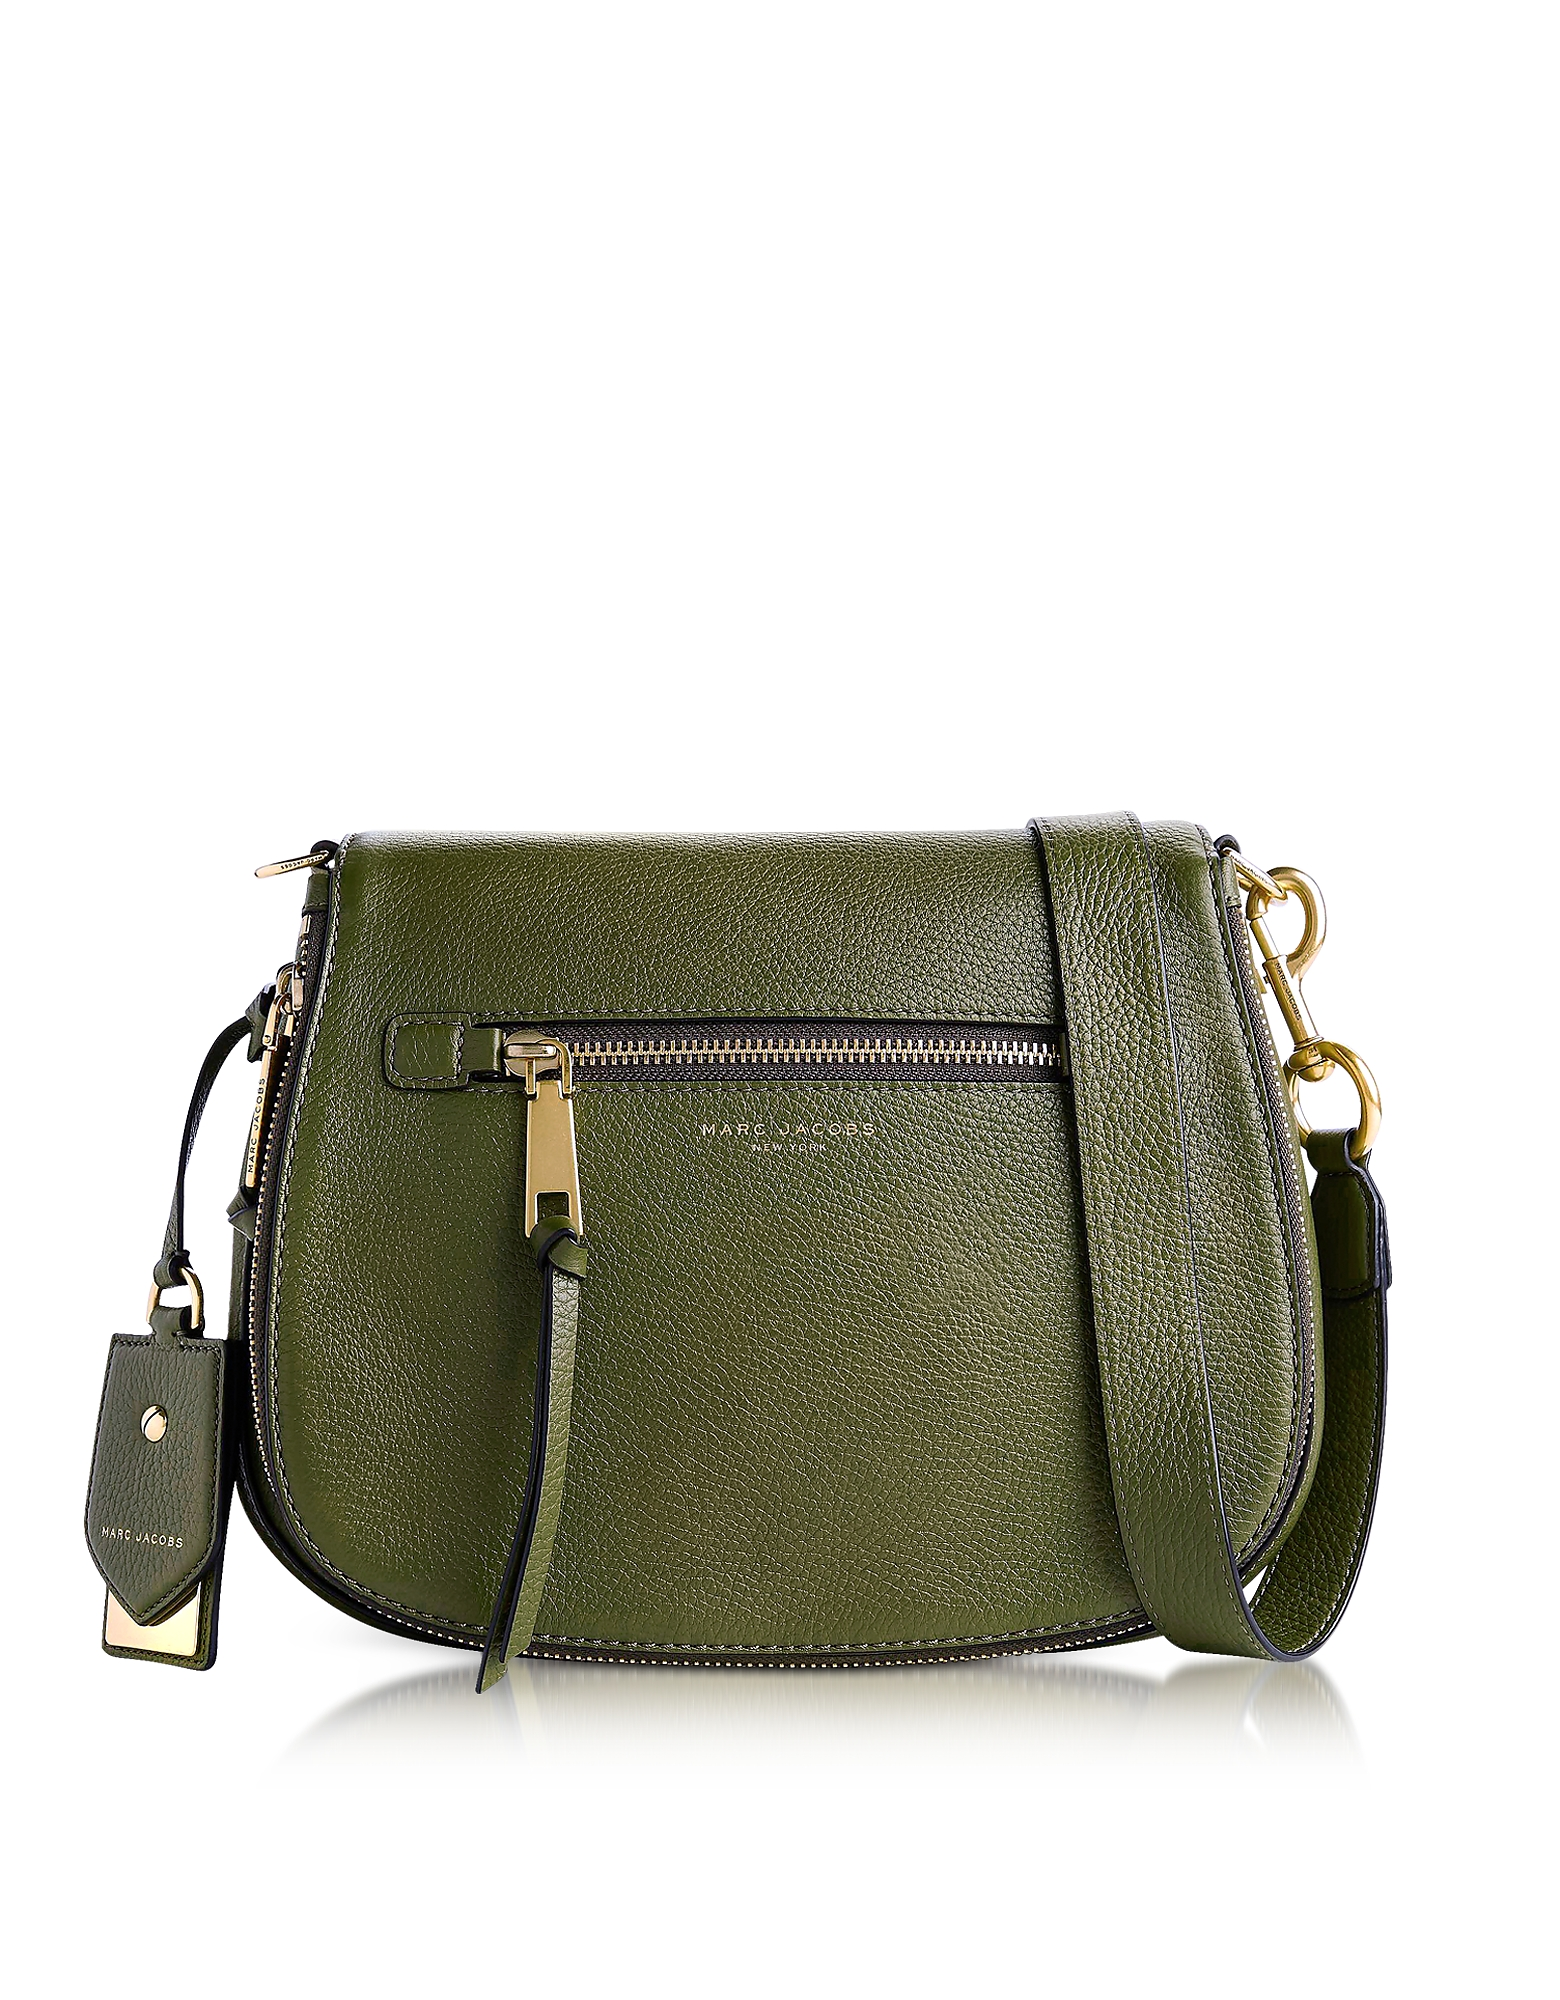 marc jacobs female marc jacobs designer handbags army green recruit leather saddle bag